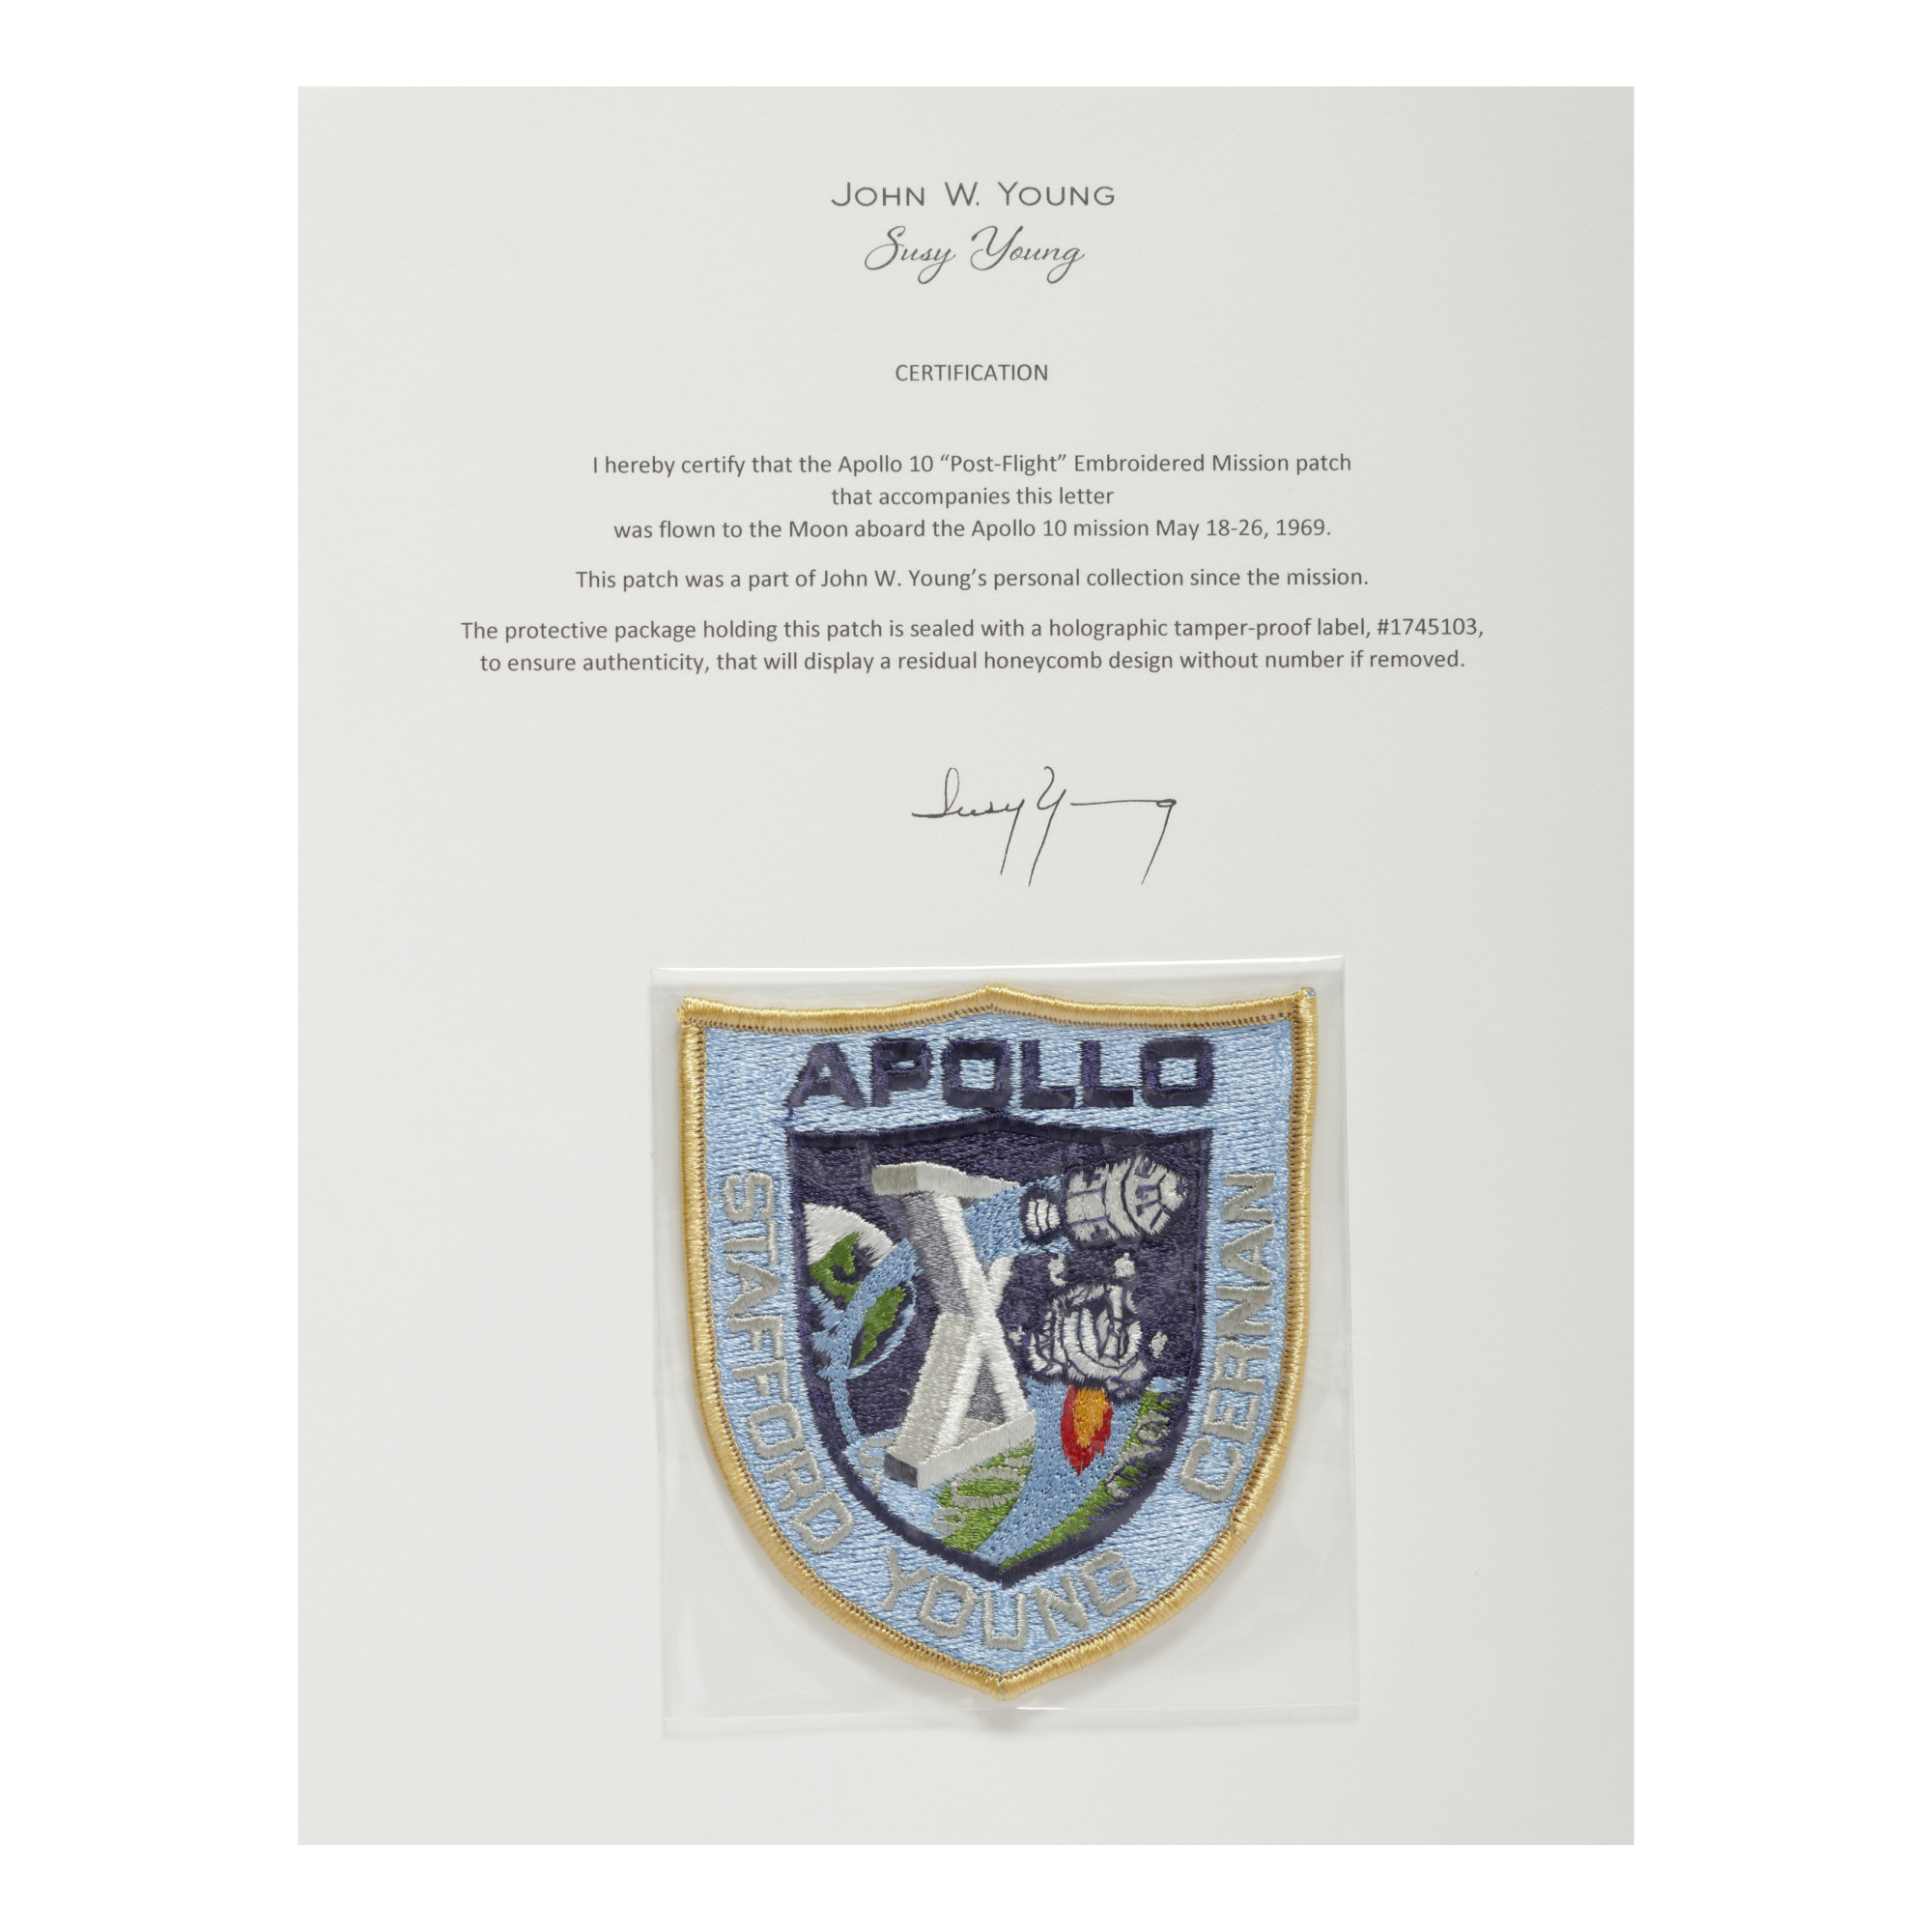 """[APOLLO 10]. FLOWN ON APOLLO 10. """"POST-FLIGHT"""" EMBROIDERED MISSION INSIGNIA PATCH FROM THE COLLECTION OF JOHN YOUNG"""